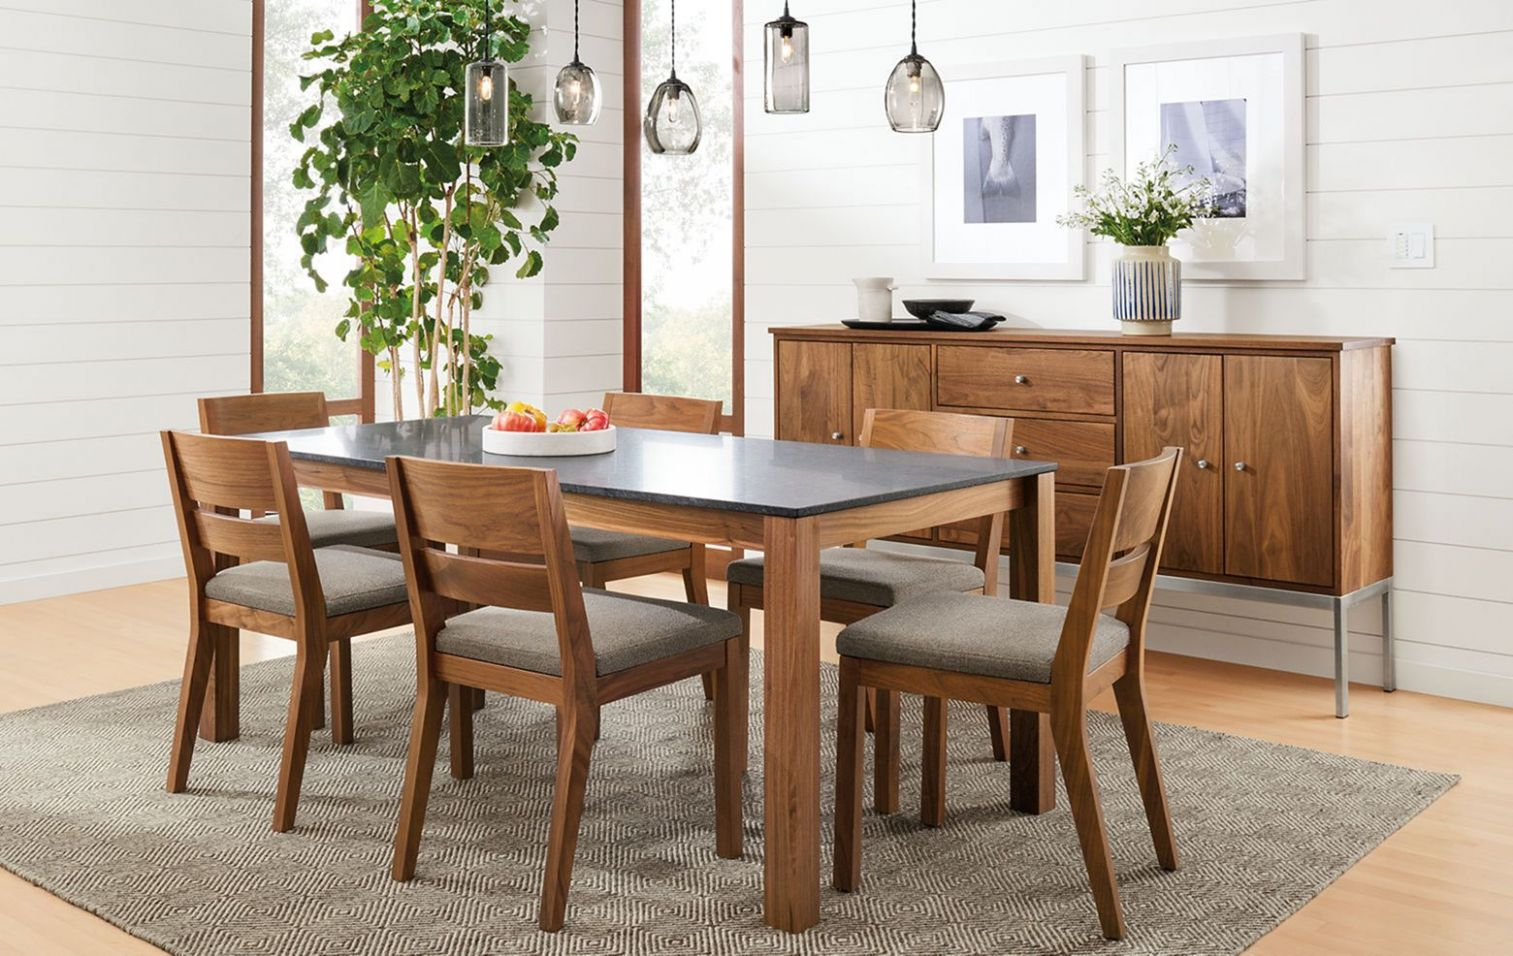 12 Adorable Small Dining Room Ideas For Dinner More Enjoy - DEXORATE - narrow dining room ideas